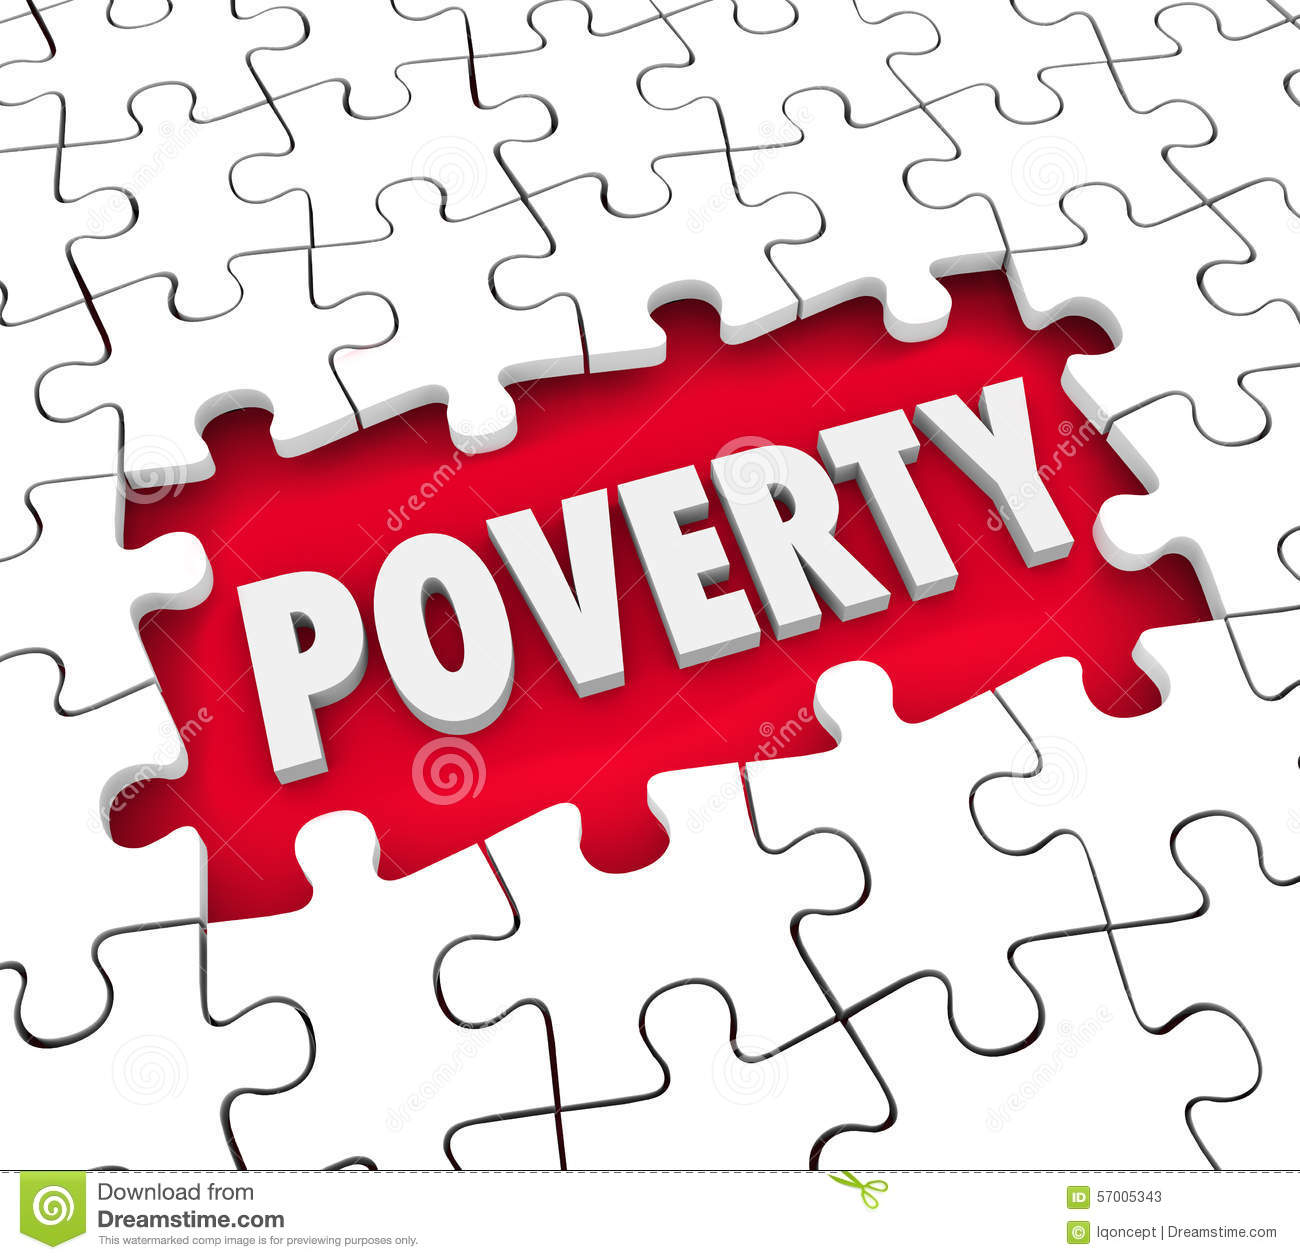 Poverty Puzzle Hole Poor Living Conditions Hunger Puzzle Pieces.